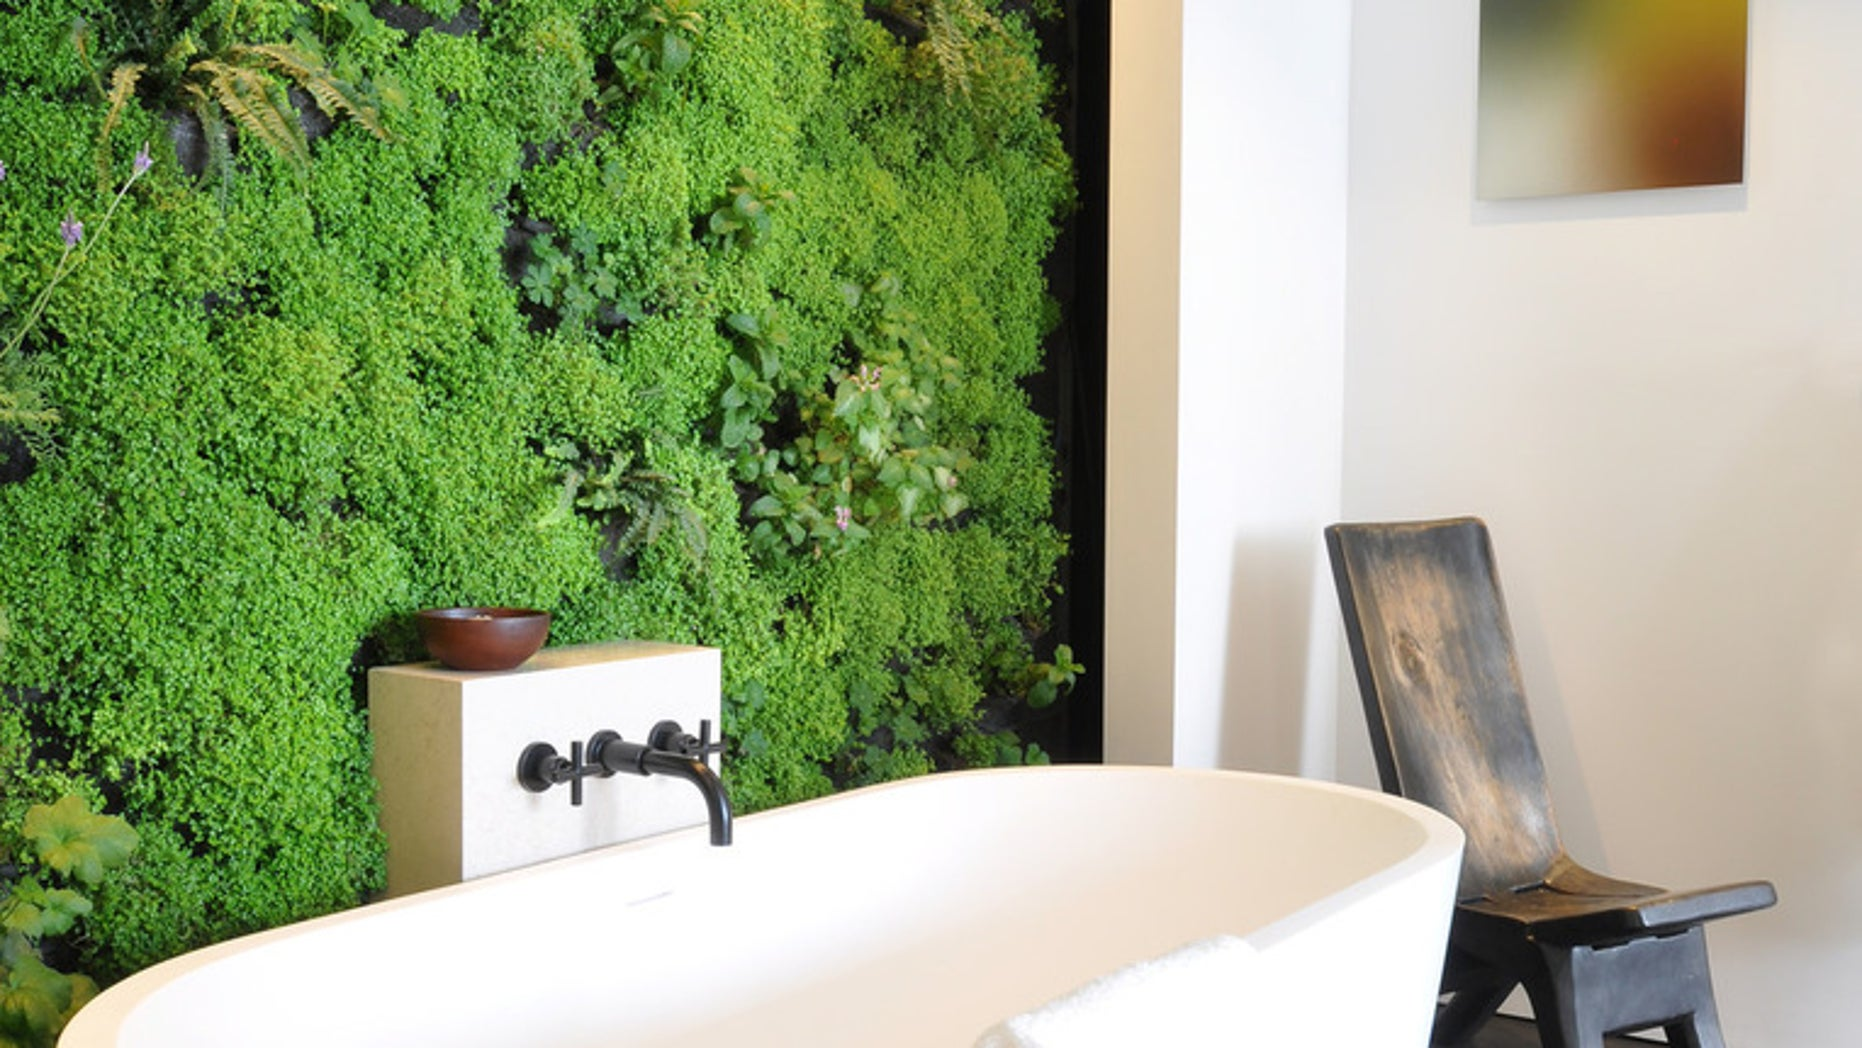 A Vertical Garden Is Truly A Living Wall. It Generates Oxygen While  Offering A Visual Focal Point Thatu0027s Arguably As Stunning As, And More  Affordable Than, ...